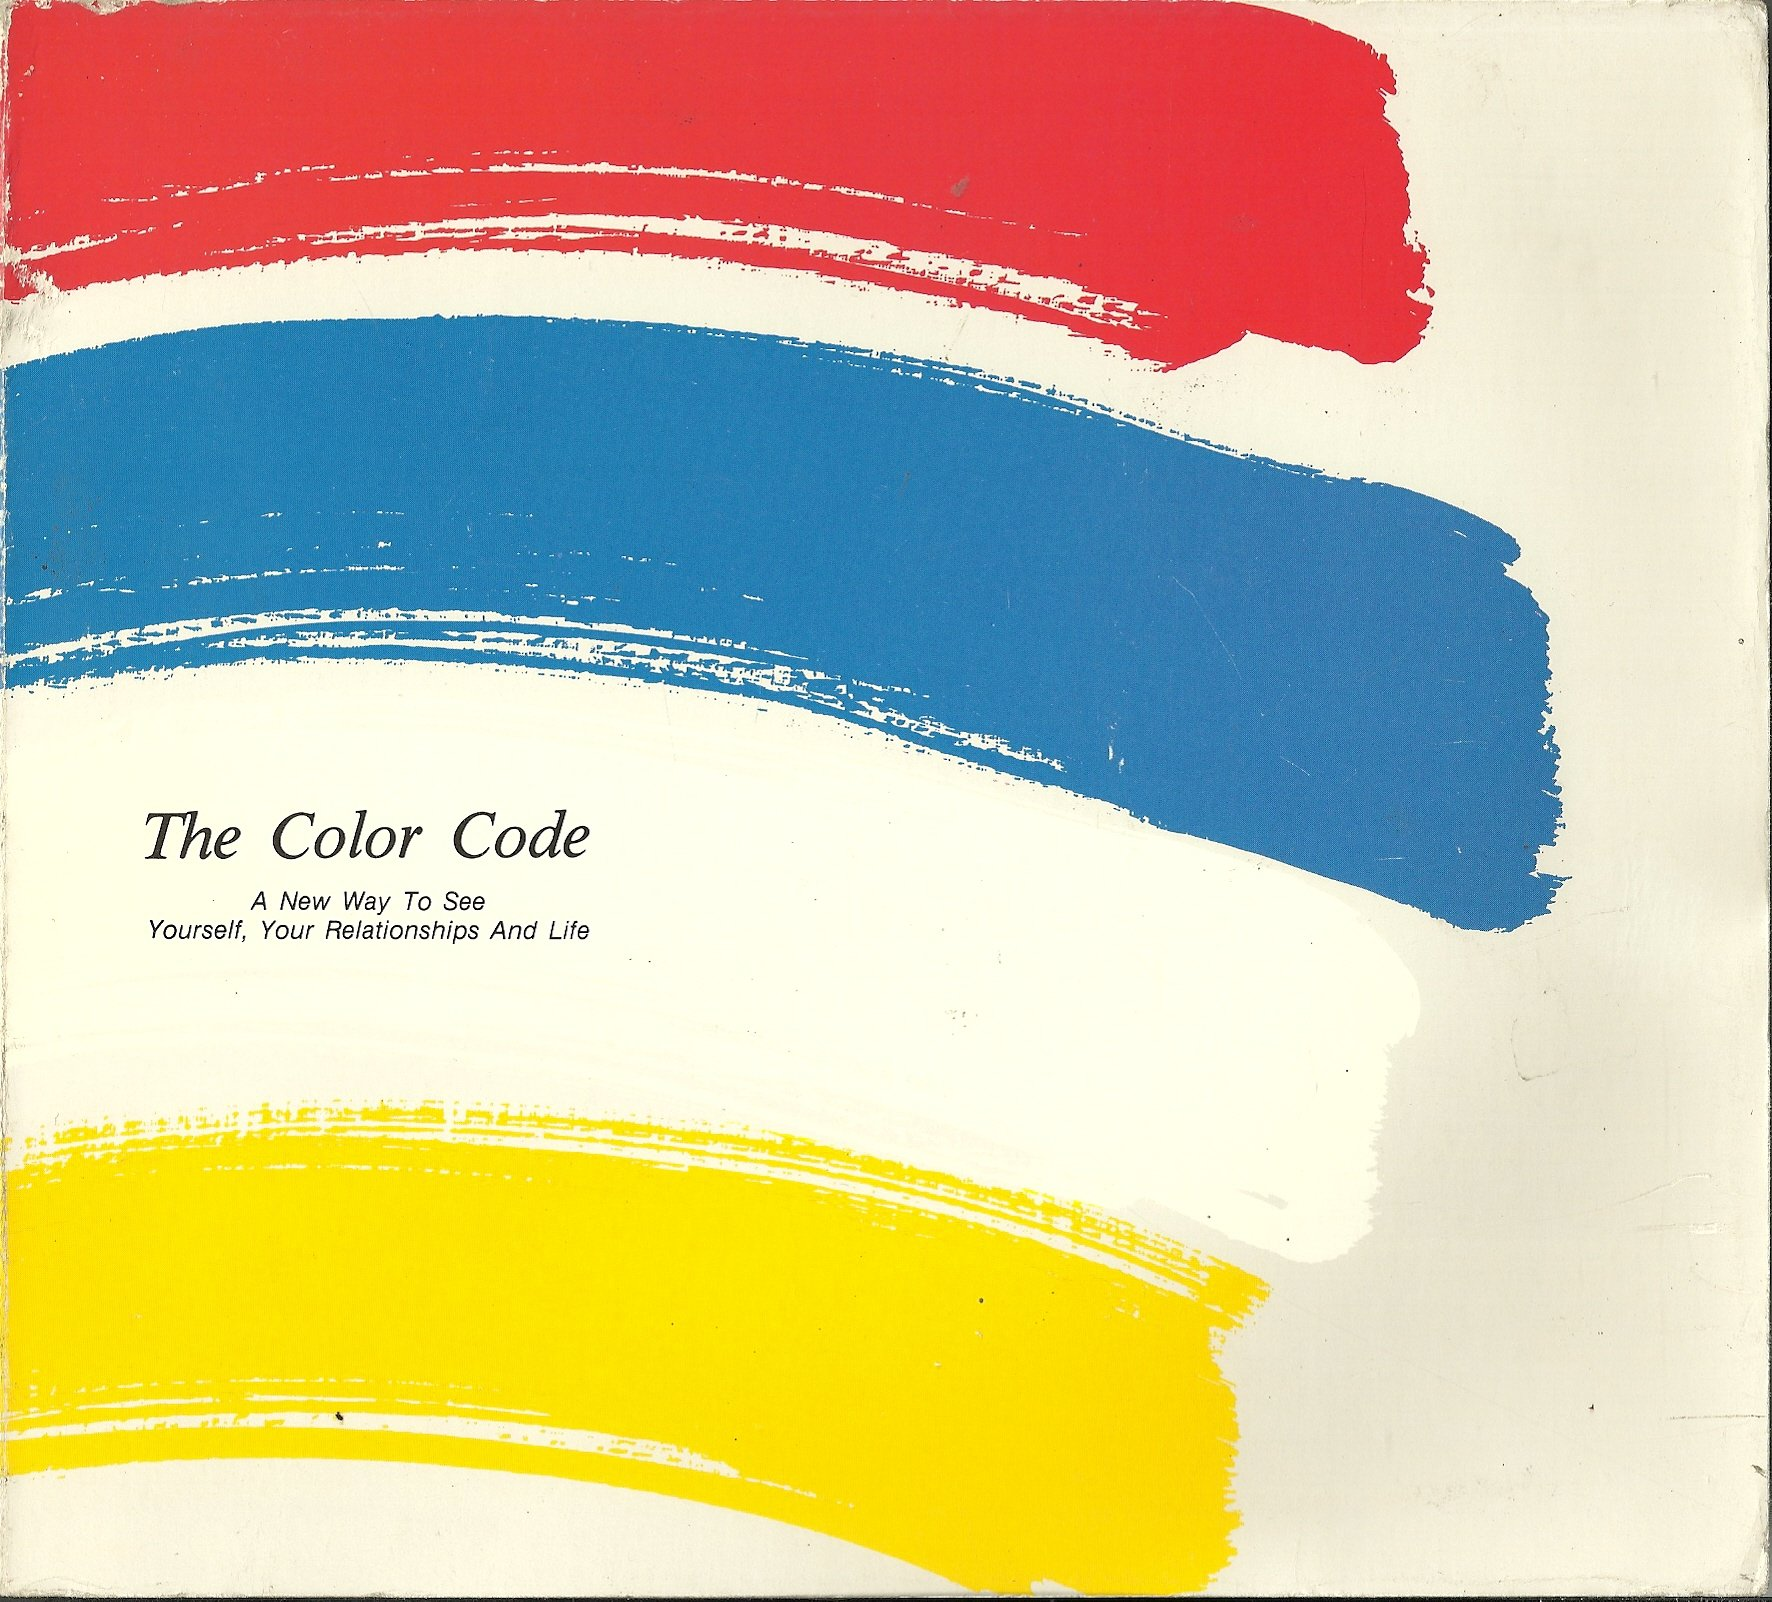 the color code taylor hartman phd 9781880674031 amazoncom books - Color Code Book